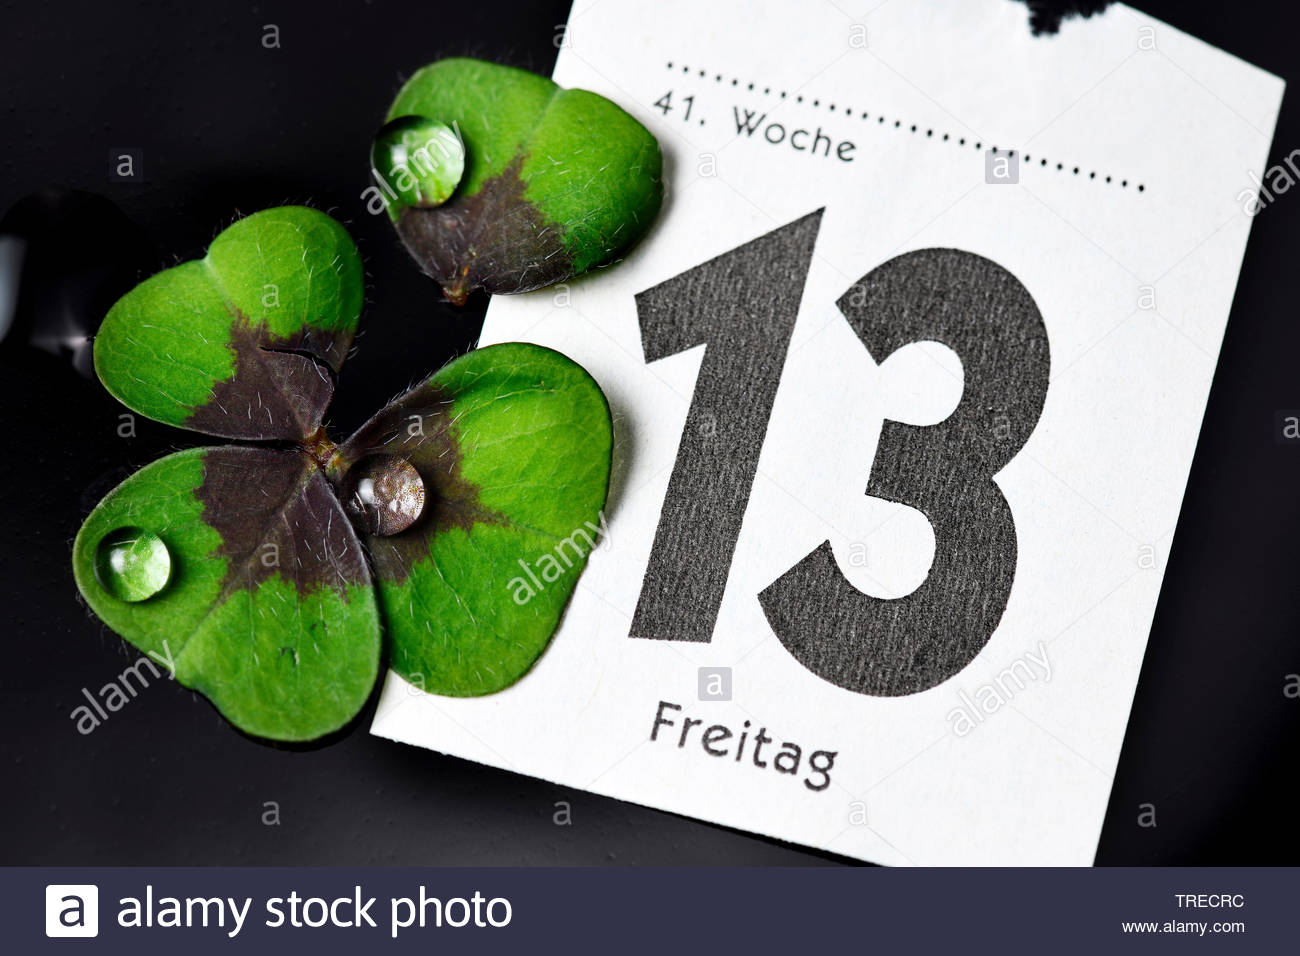 Kalenderblatt Freitag der 13. und zerrissenes Kleeblatt, Deutschland | calender sheet Friday the 13th and broken cloverleaf, Germany | BLWS523136.jpg - Stock Image